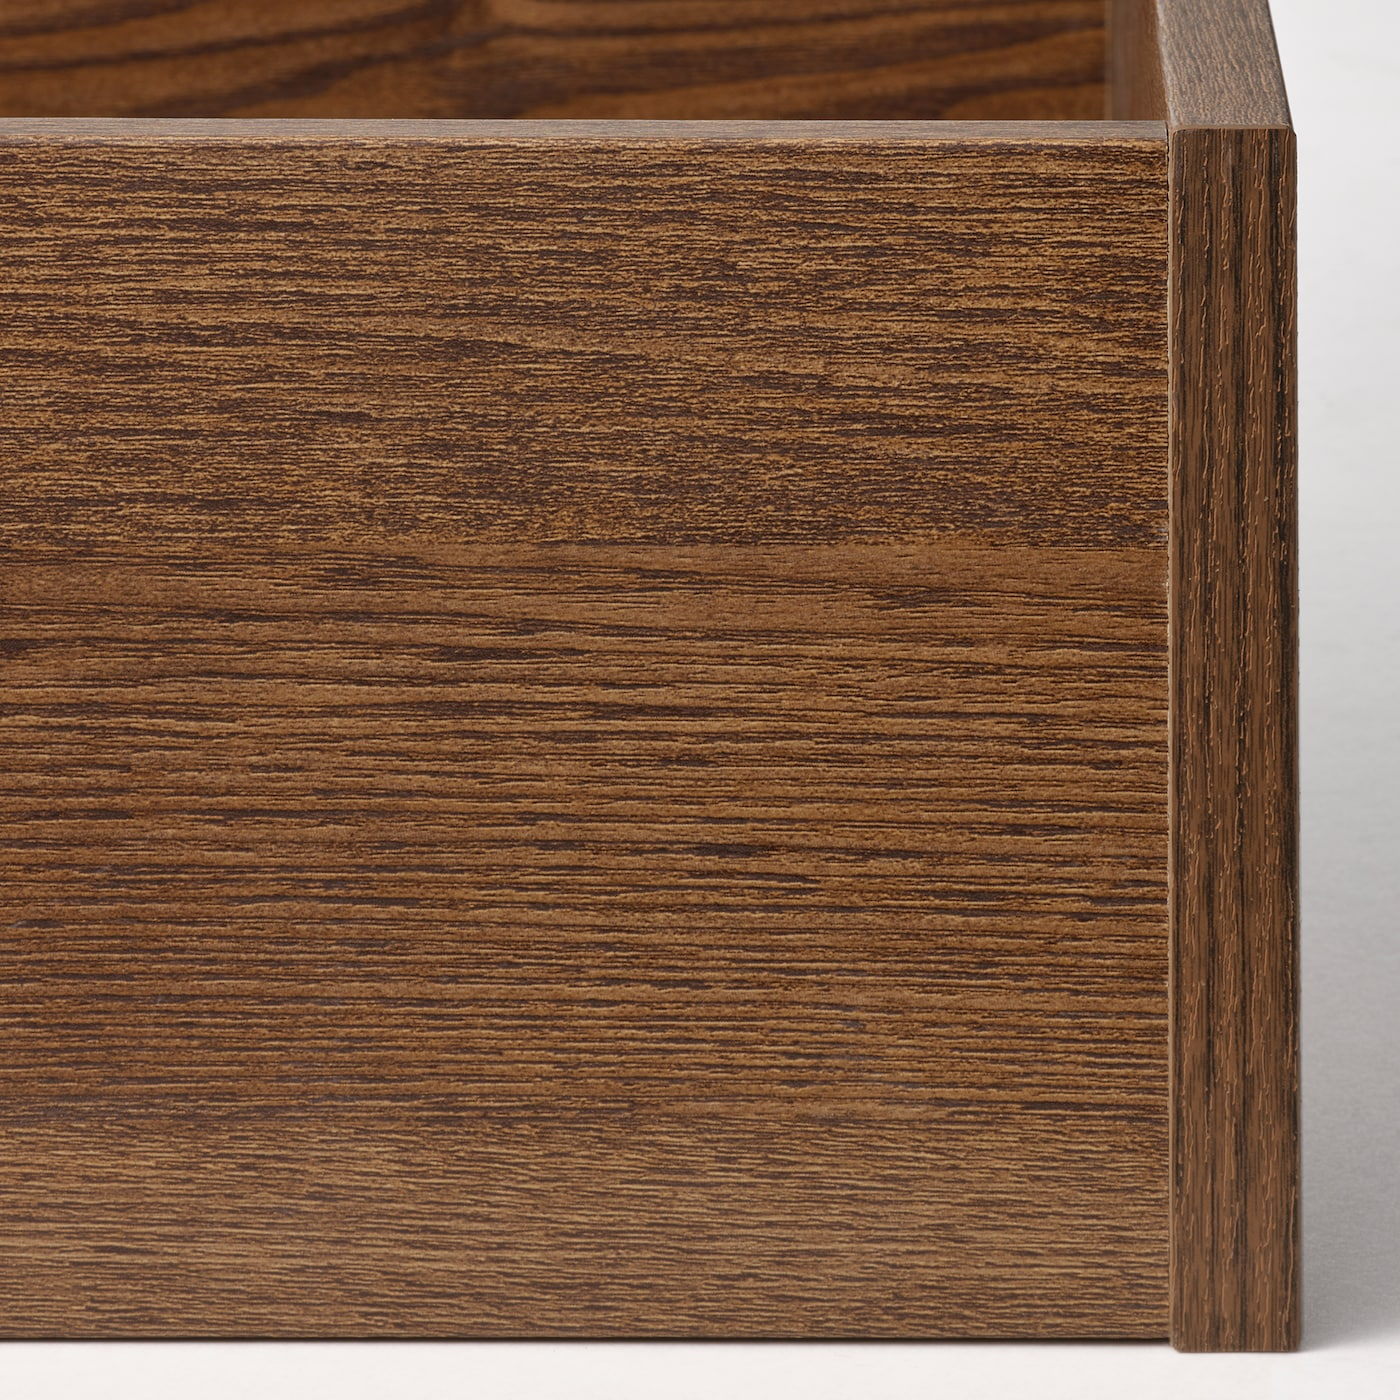 KOMPLEMENT Drawer, brown stained ash effect, 50x58 cm